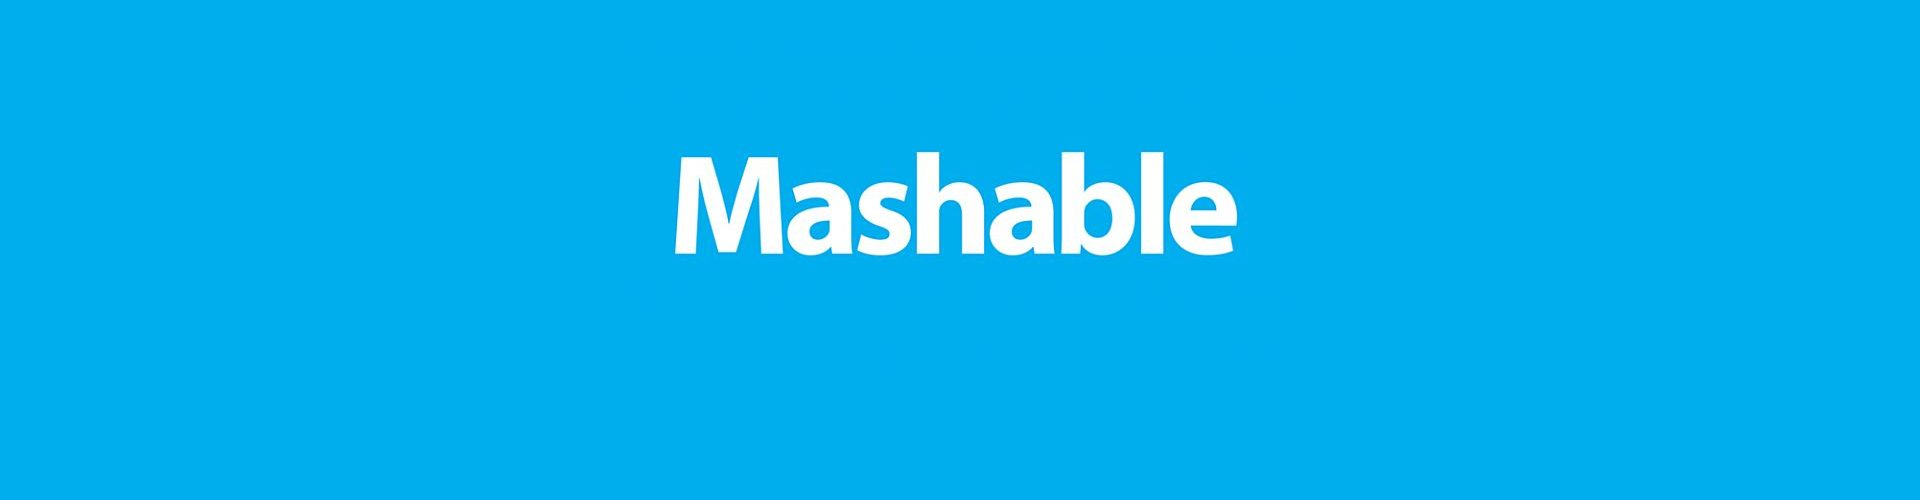 WordPress Themes Like Mashable